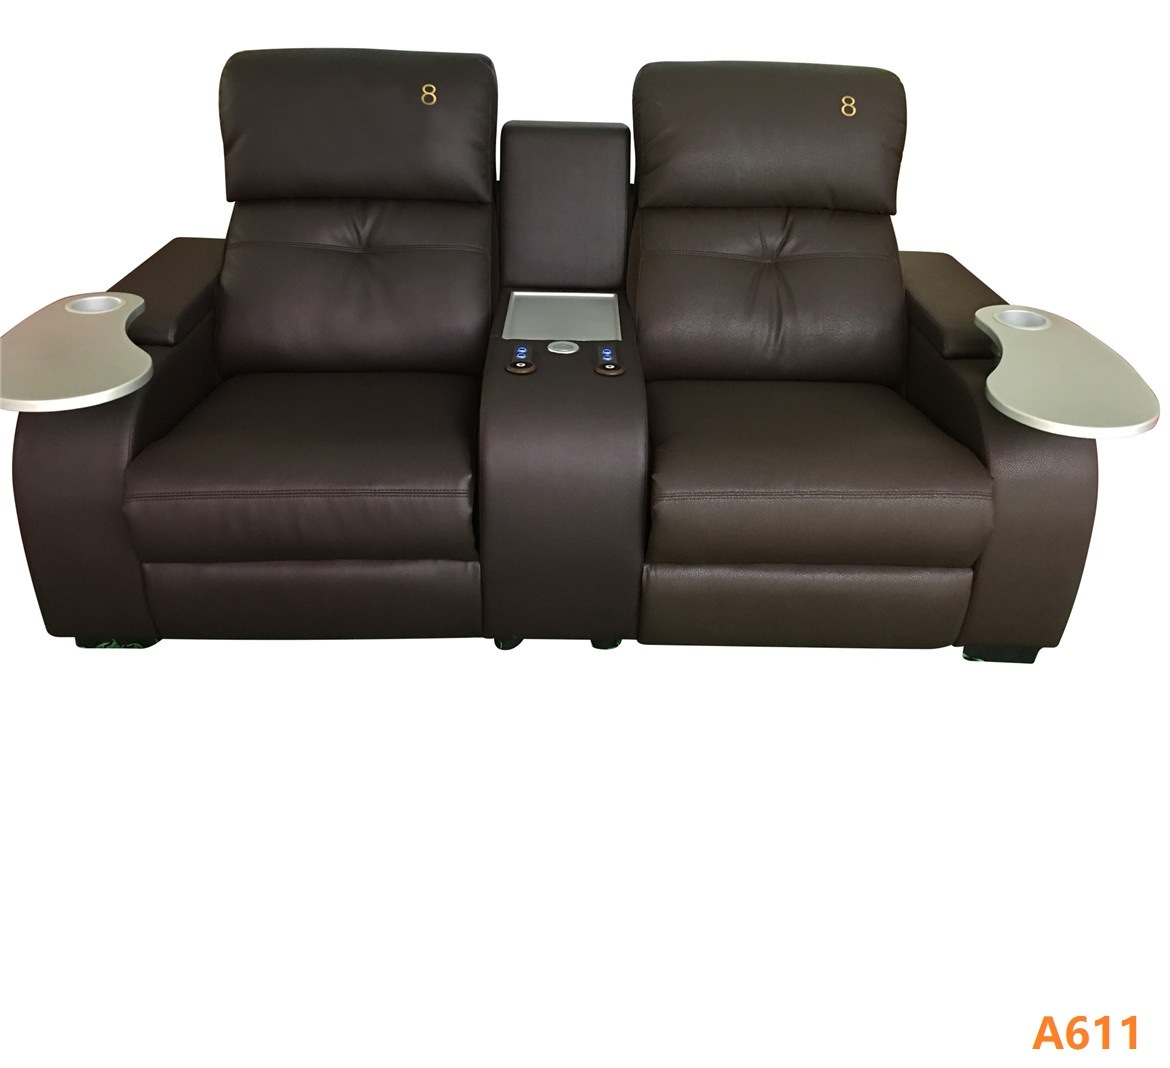 China High Quality Home Thearter Leather Recliner Sofa Chair ...